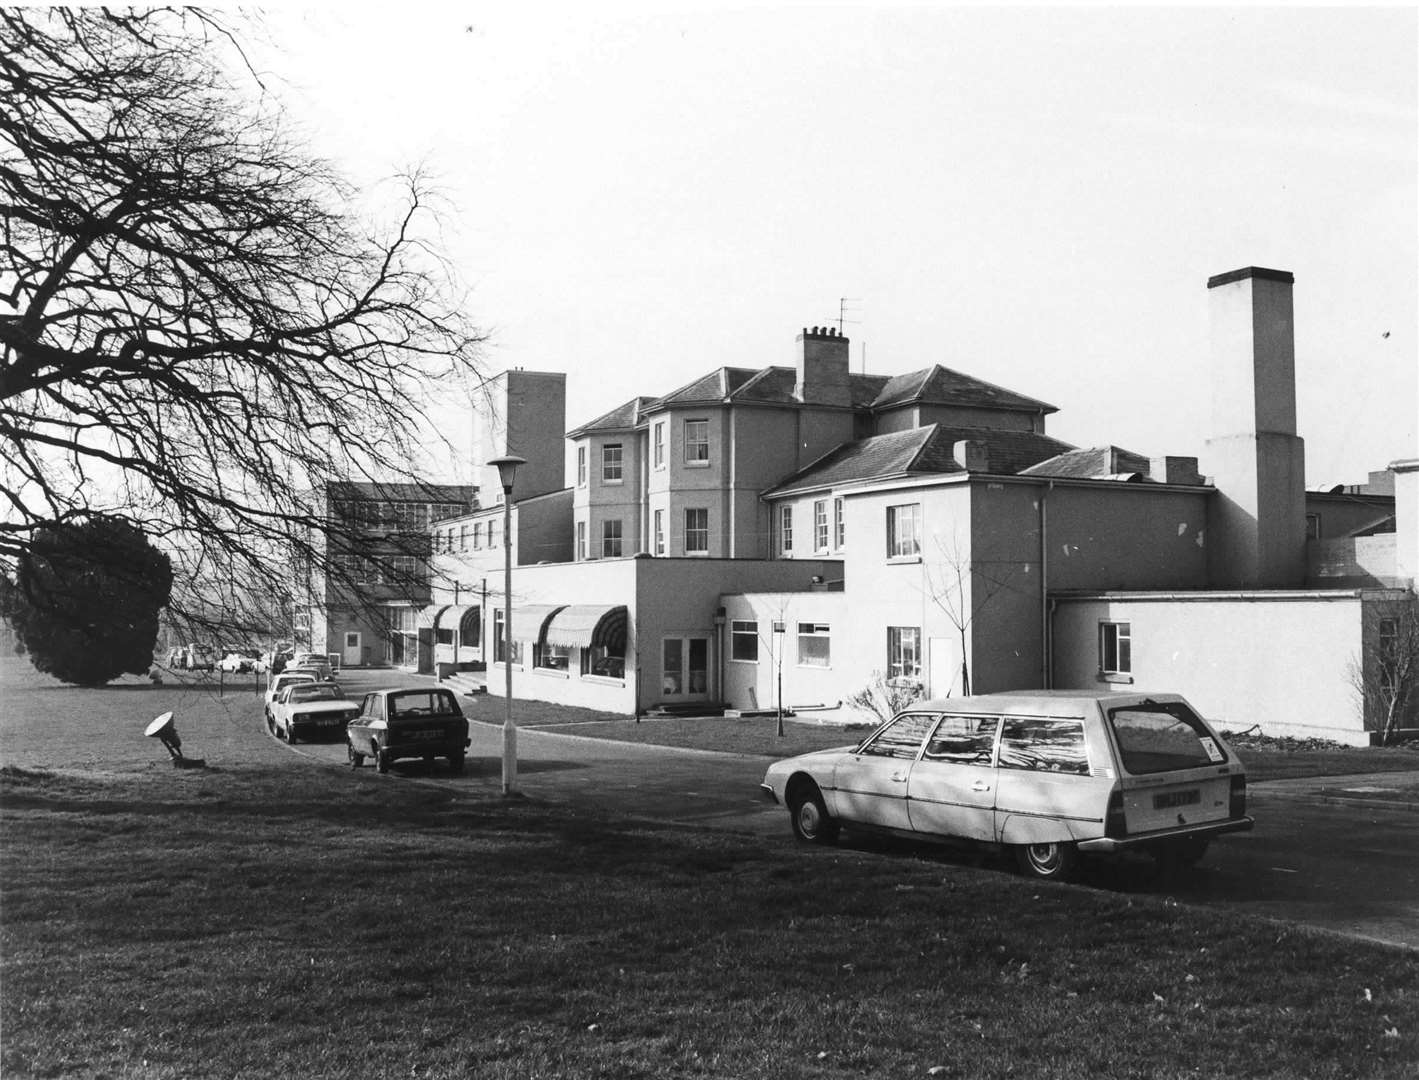 Great Danes Hotel in Hollingbourne in 1984